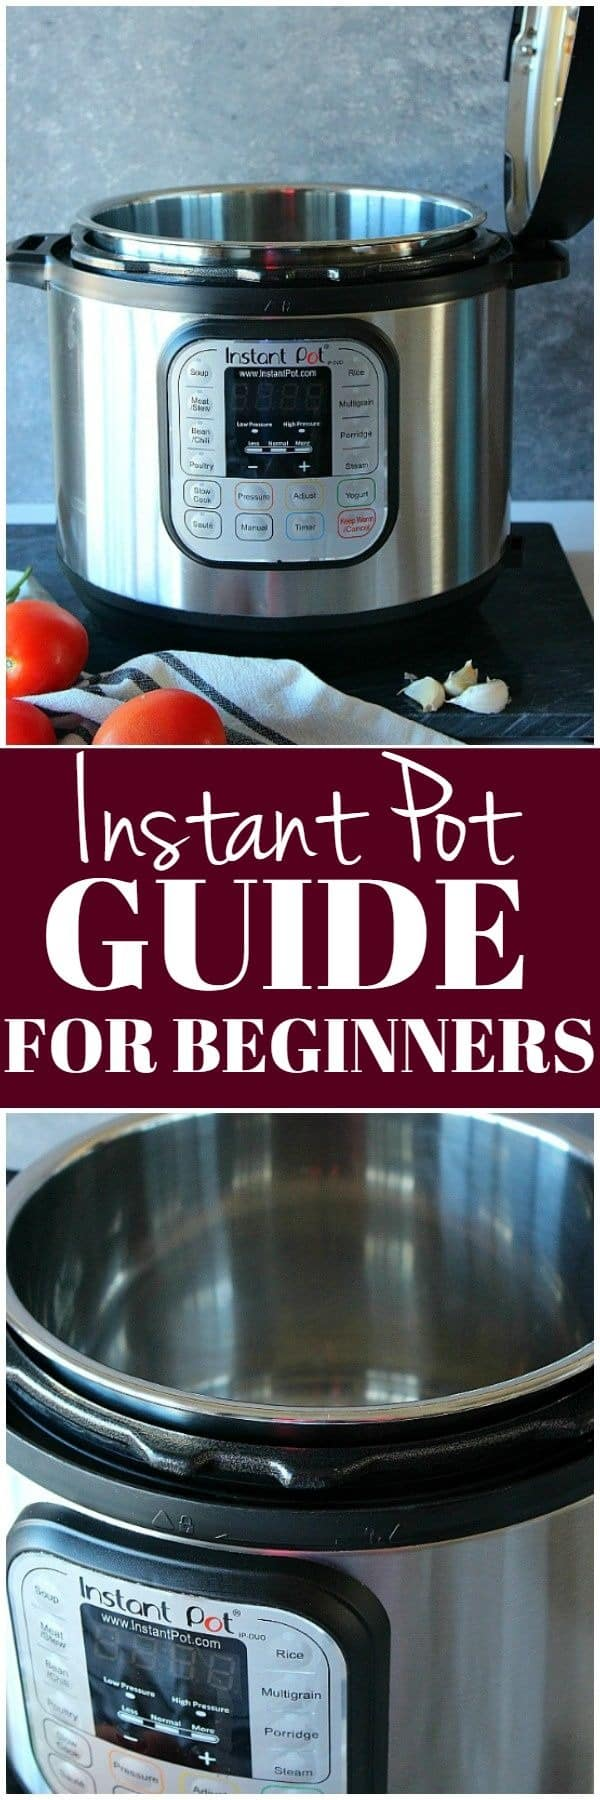 how to use the Instant Pot beginners guide 1 Instant Pot Guide for Beginners